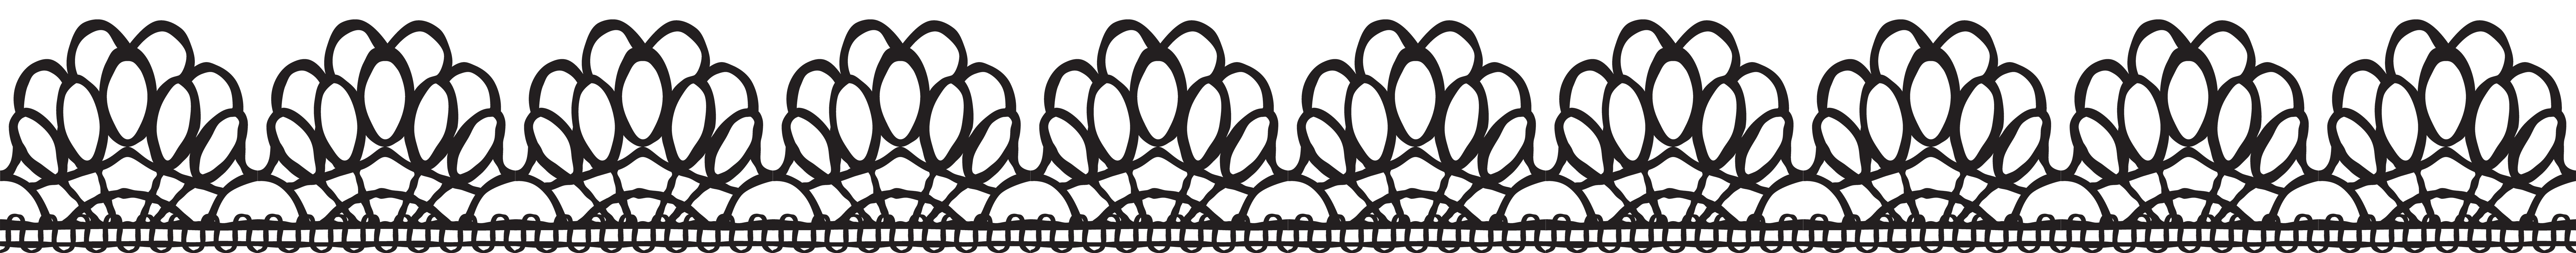 Lace border png. Clip art image gallery